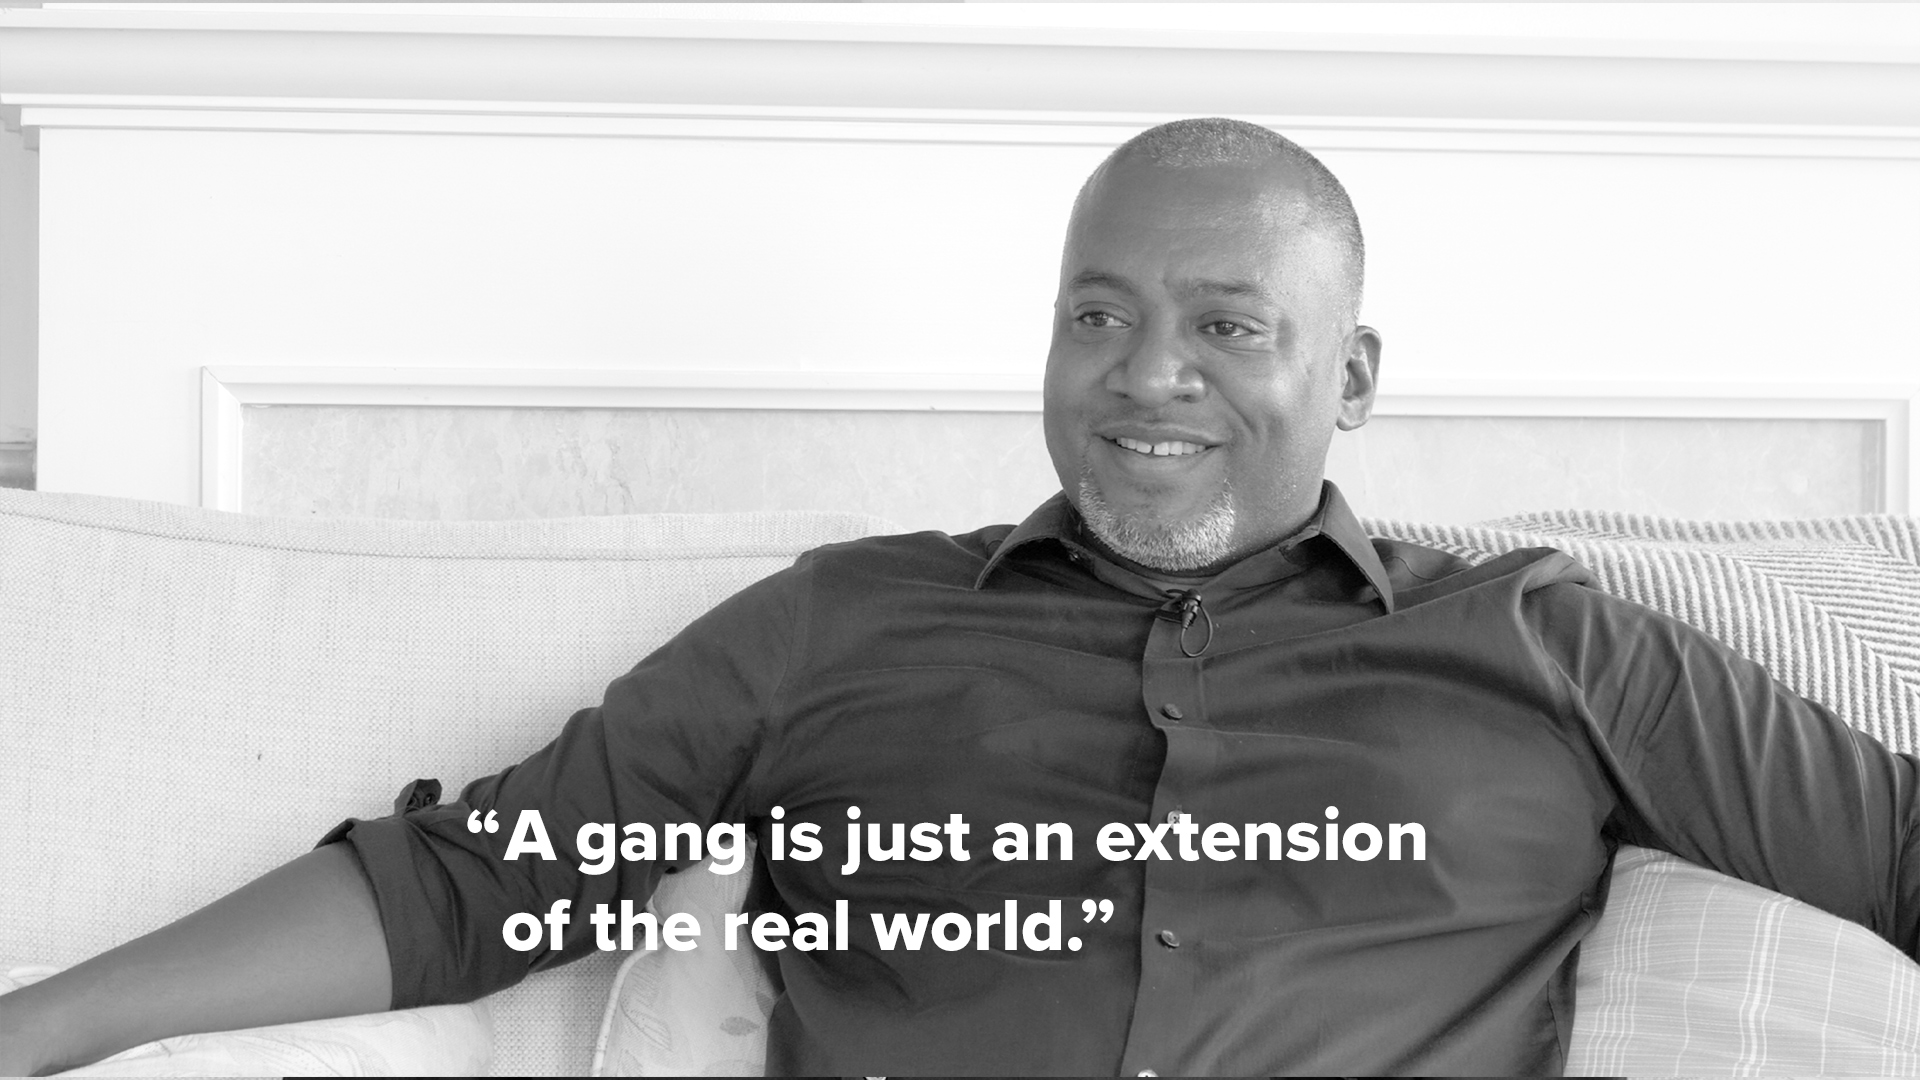 Revealing the truth and busting myths about gangs | Alex Alonso